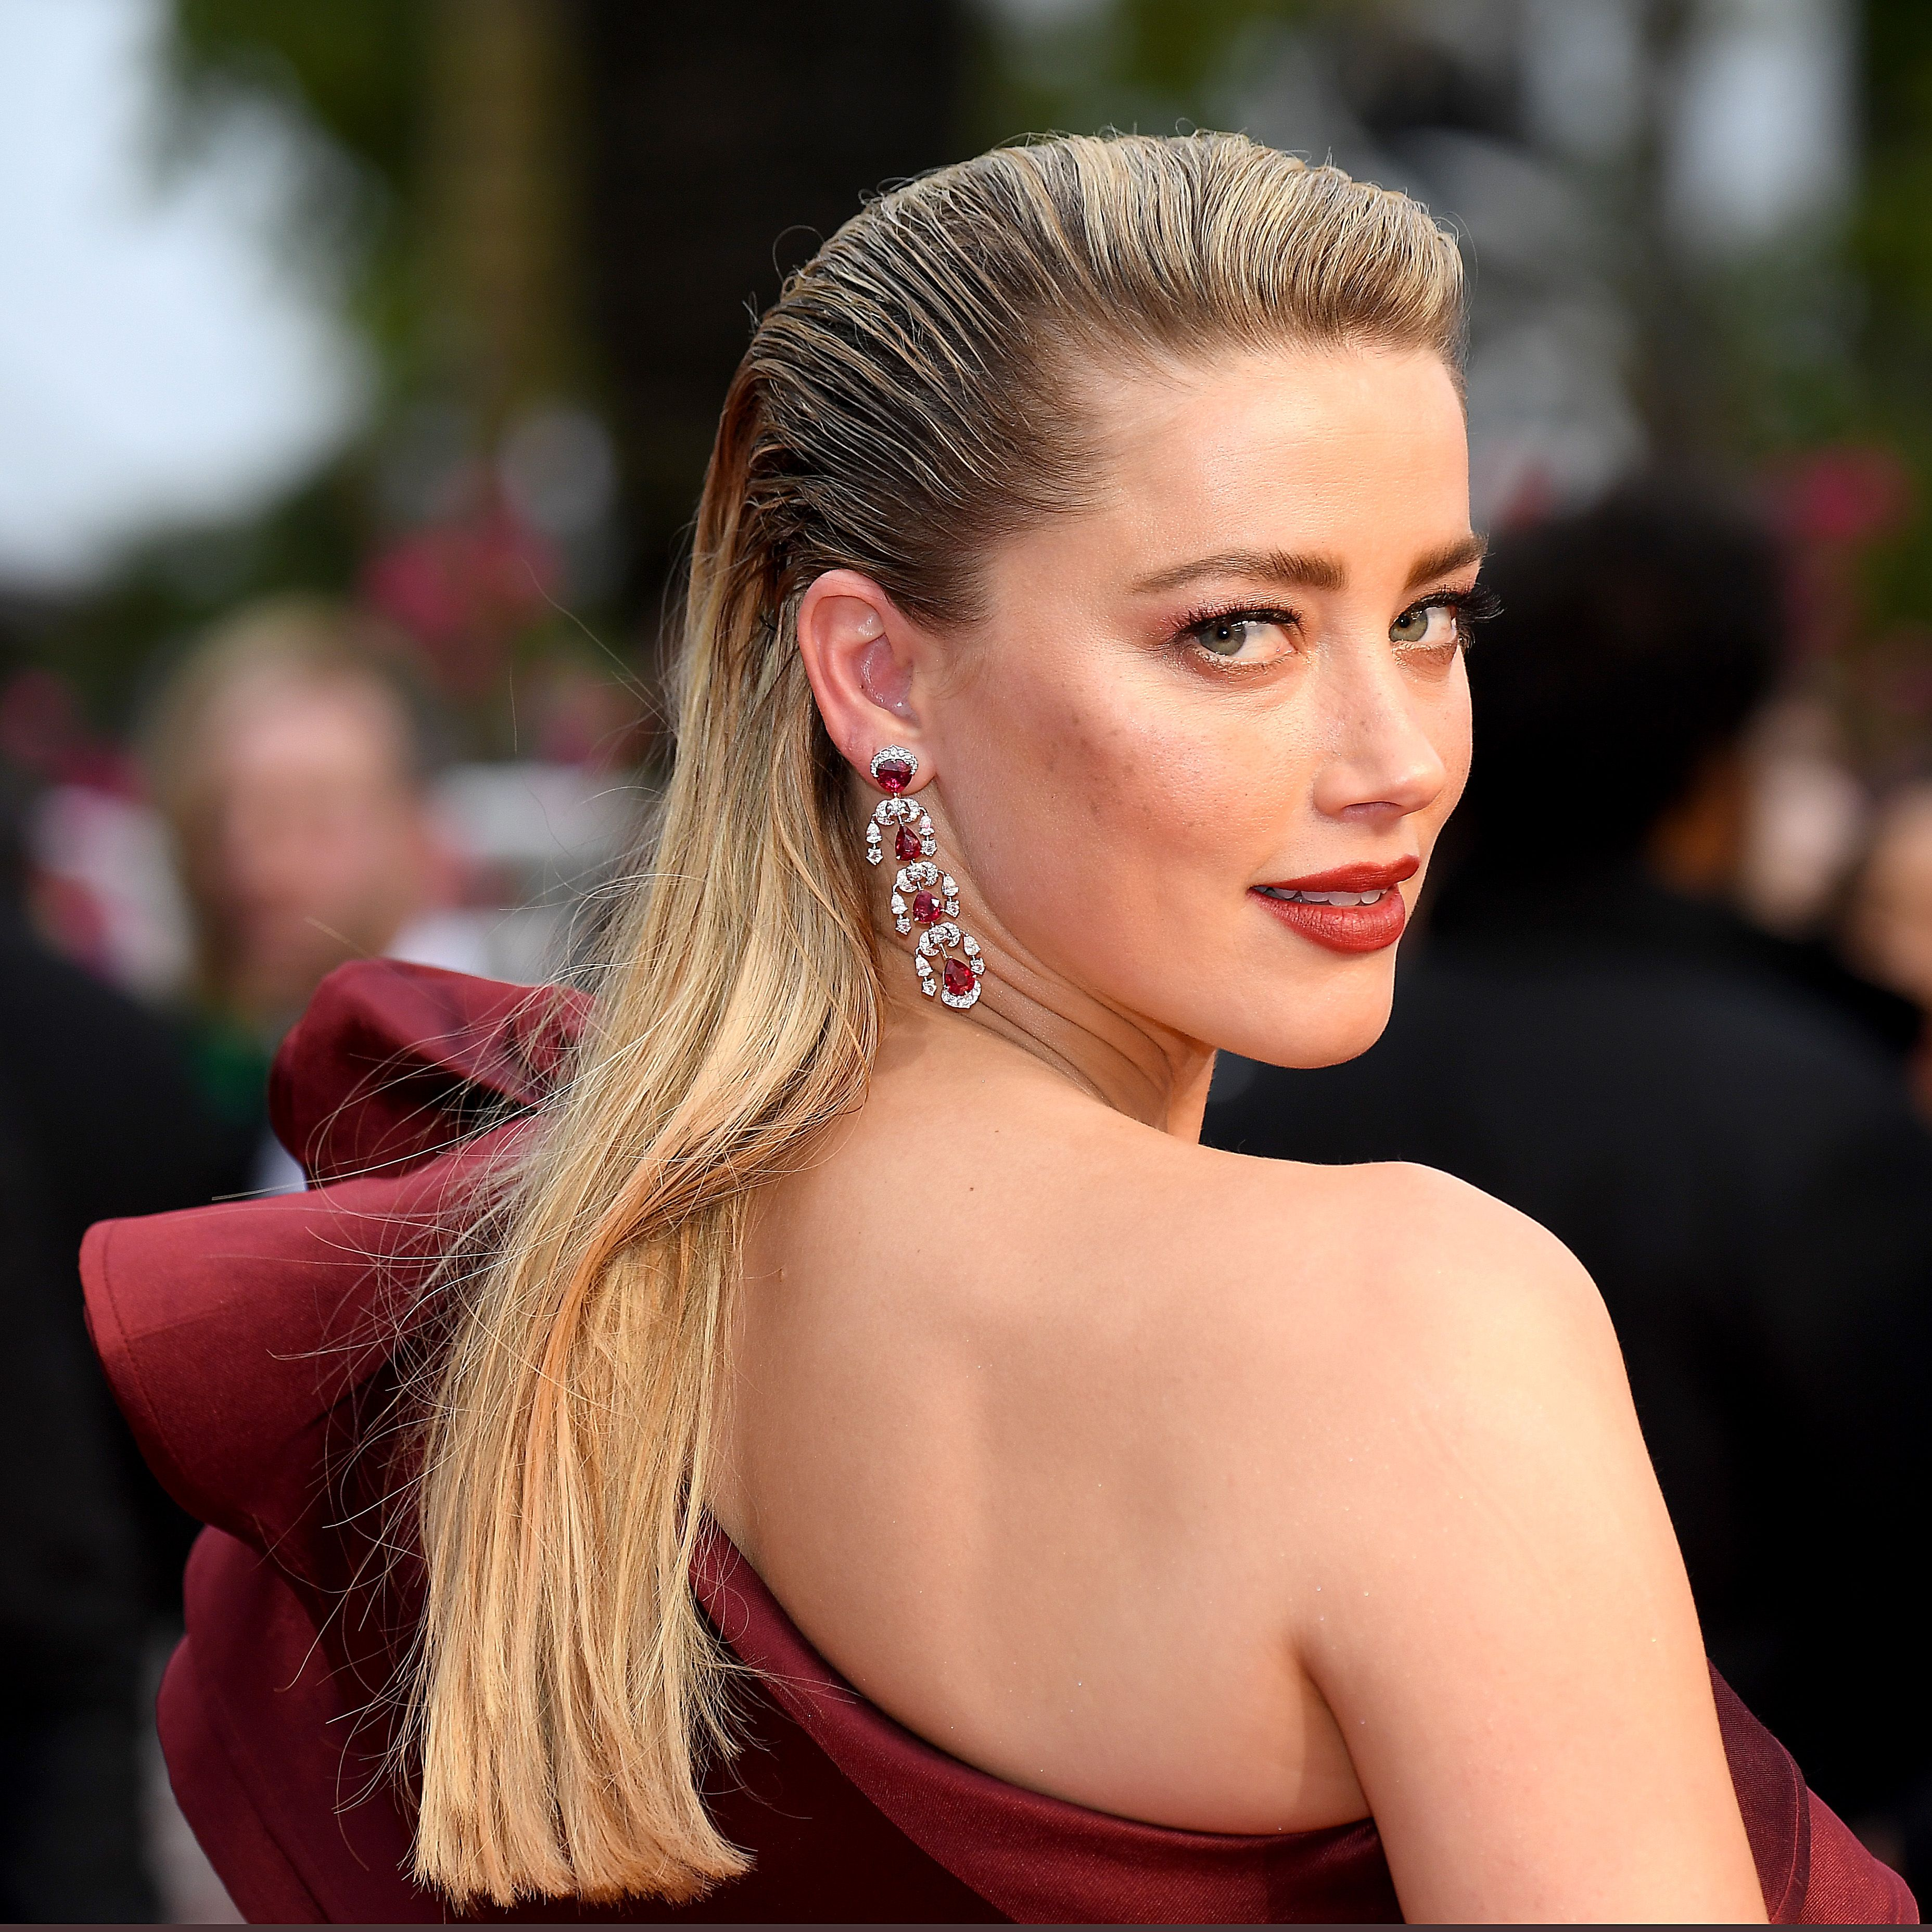 Johnny Depp Believes Amber Heard Cheated On Him With Elon Musk